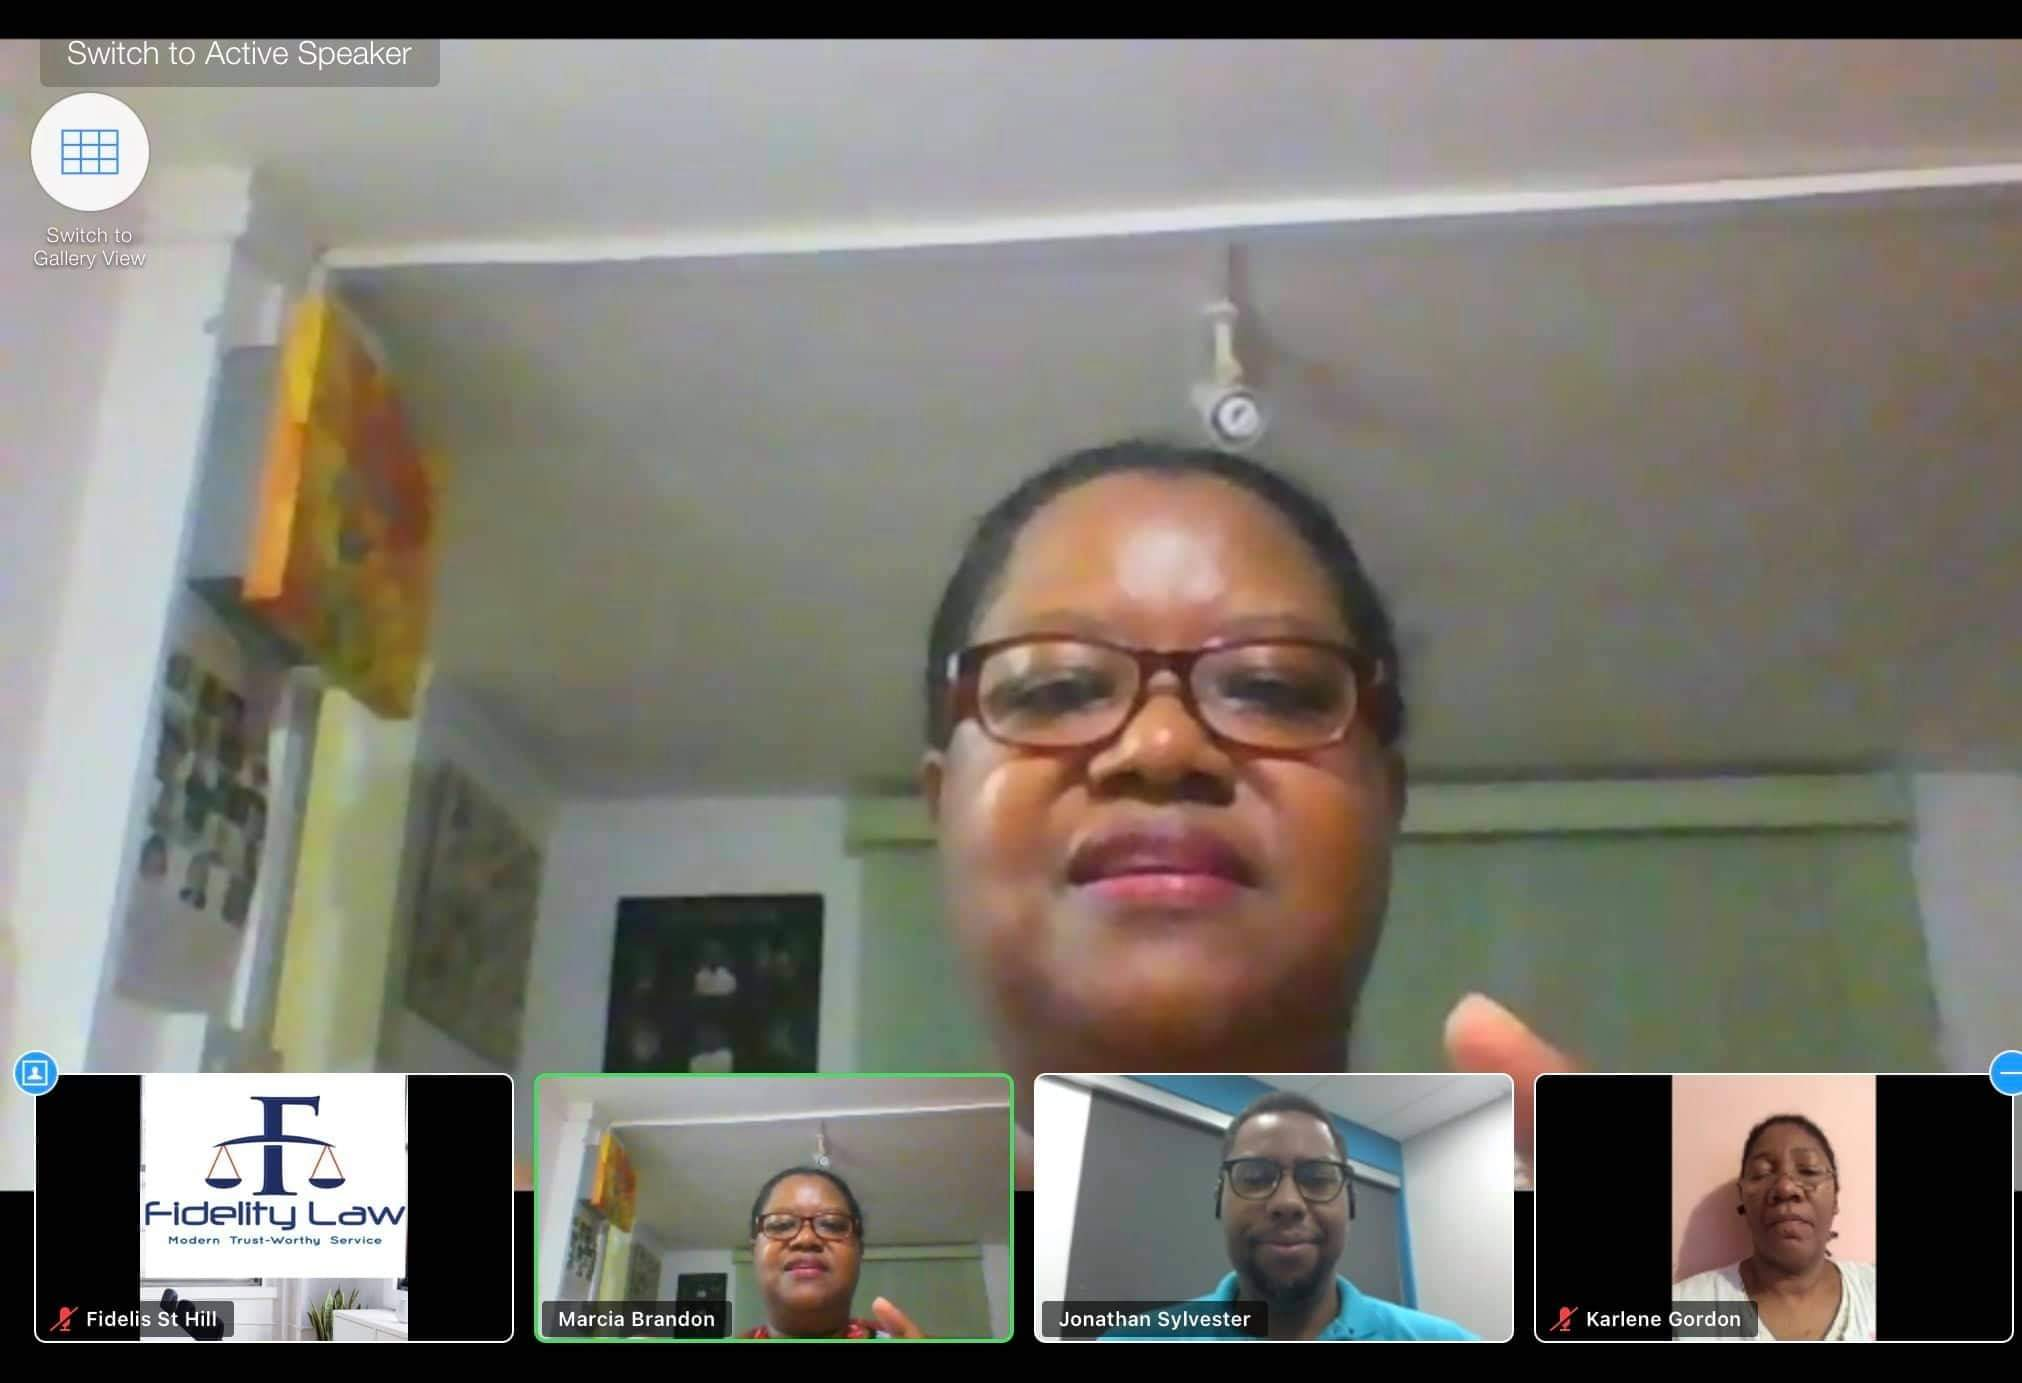 https://www.bajanreporter.com/2020/12/recreating-solutions-for-caribbean-msmes-and-ngos-via-telecoms